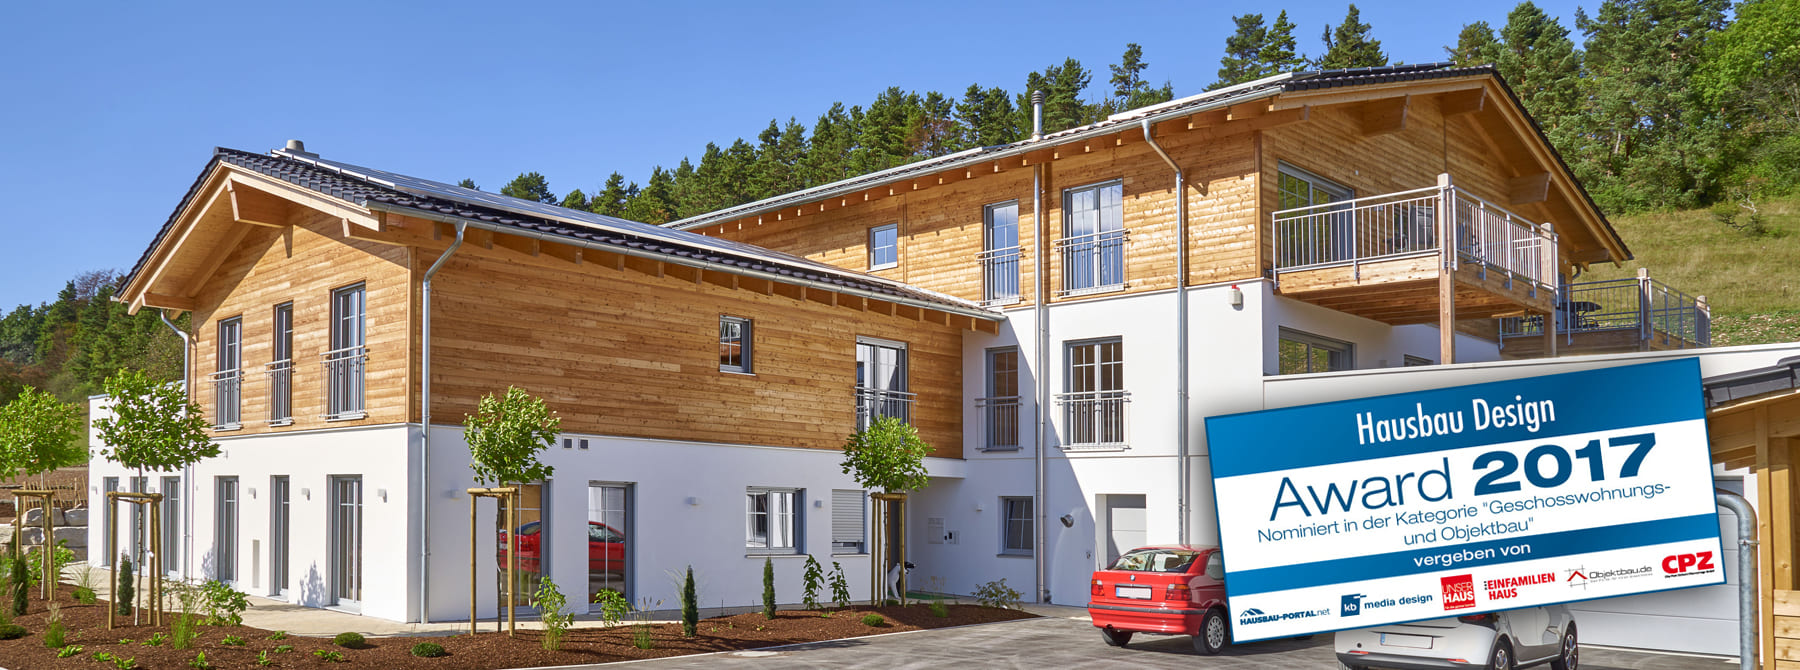 Appartementhaus in Holz